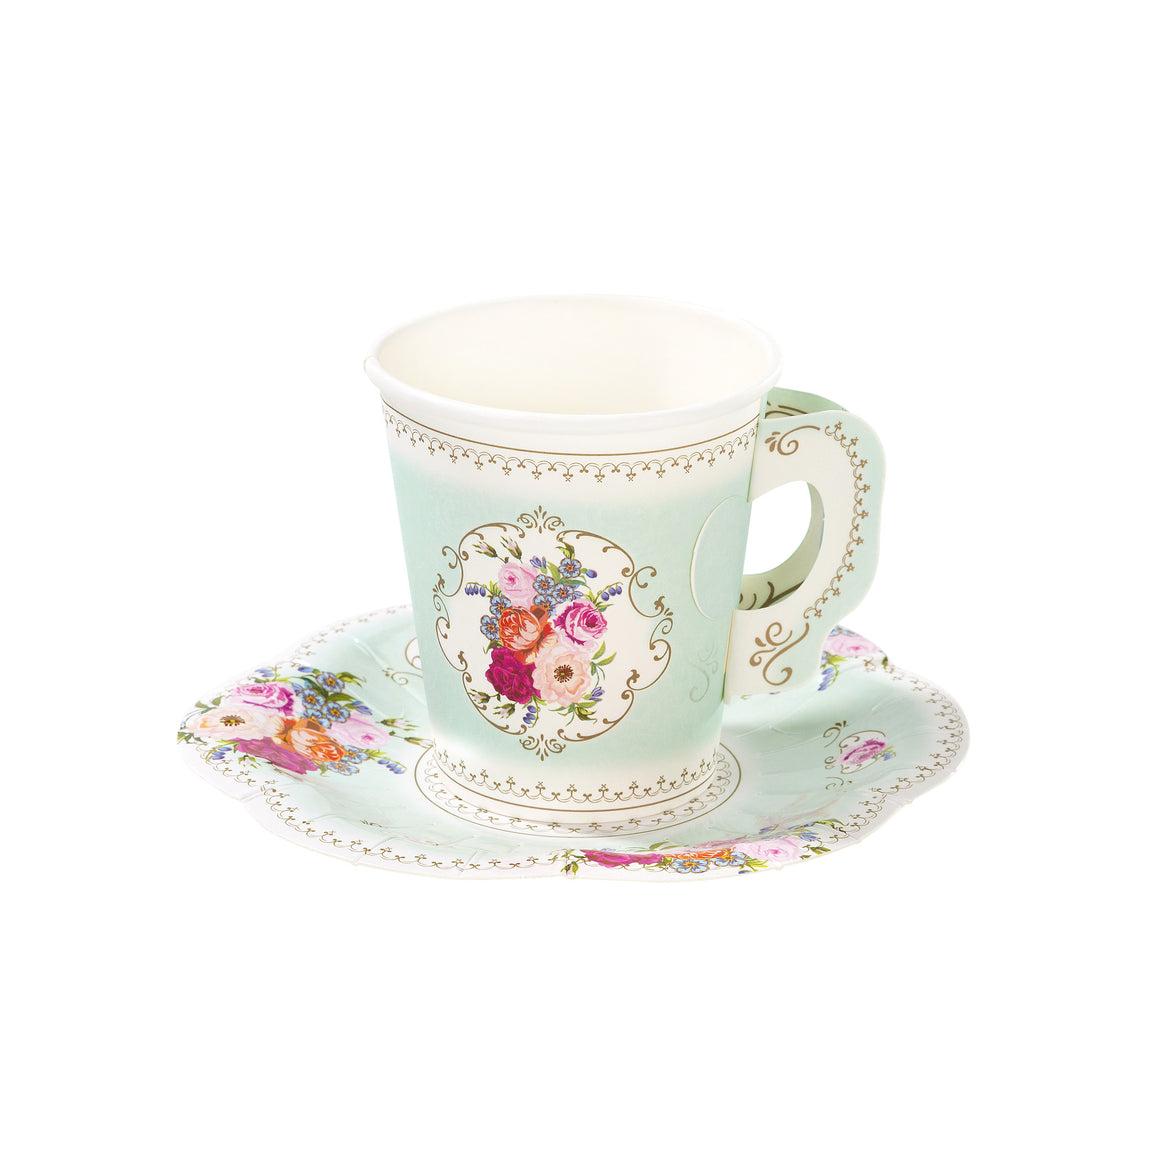 Scrumptious 12 Teacup & Saucer Set